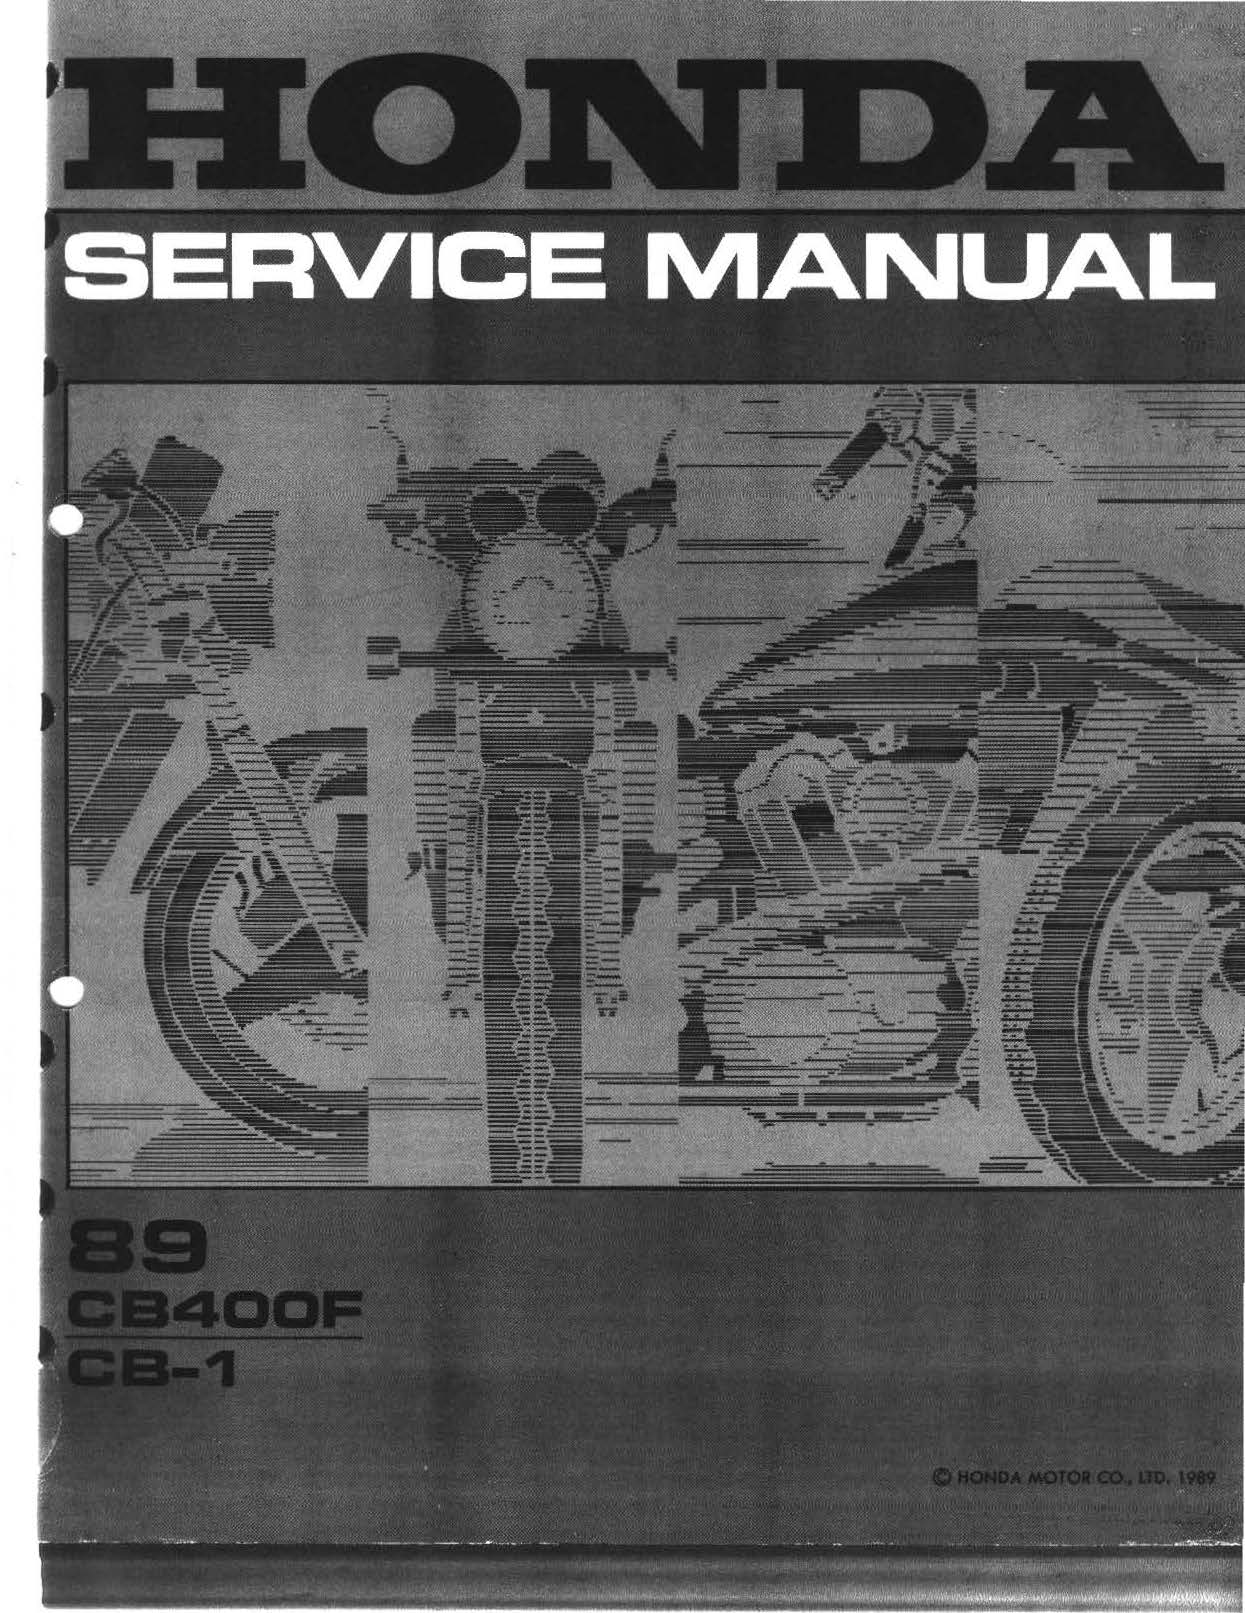 Workshop manual for Honda CB400F (1989)